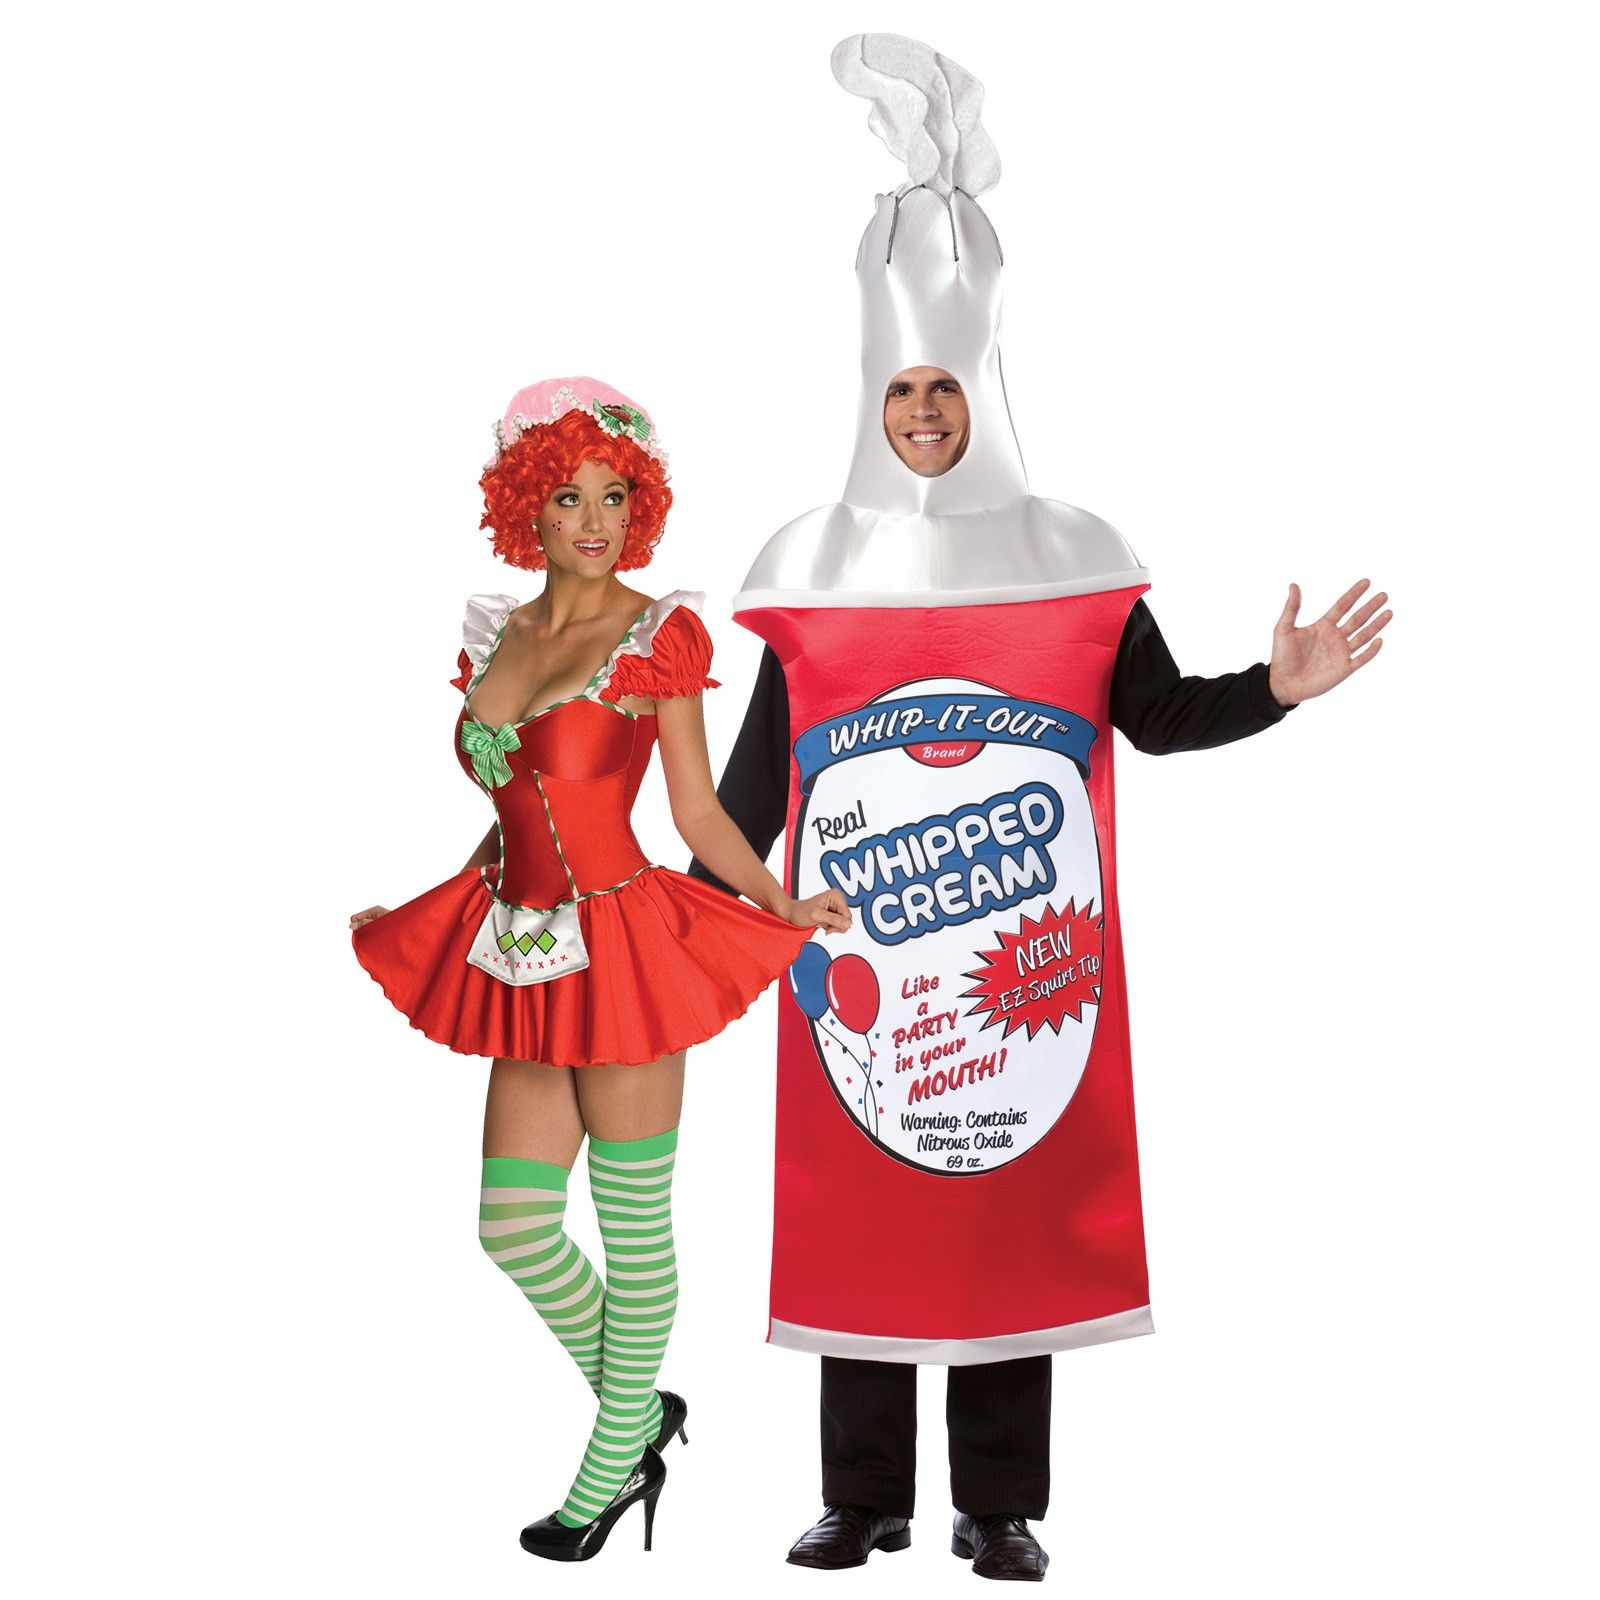 Strawberry Shortcake and Whip Cream Can Couples Costume